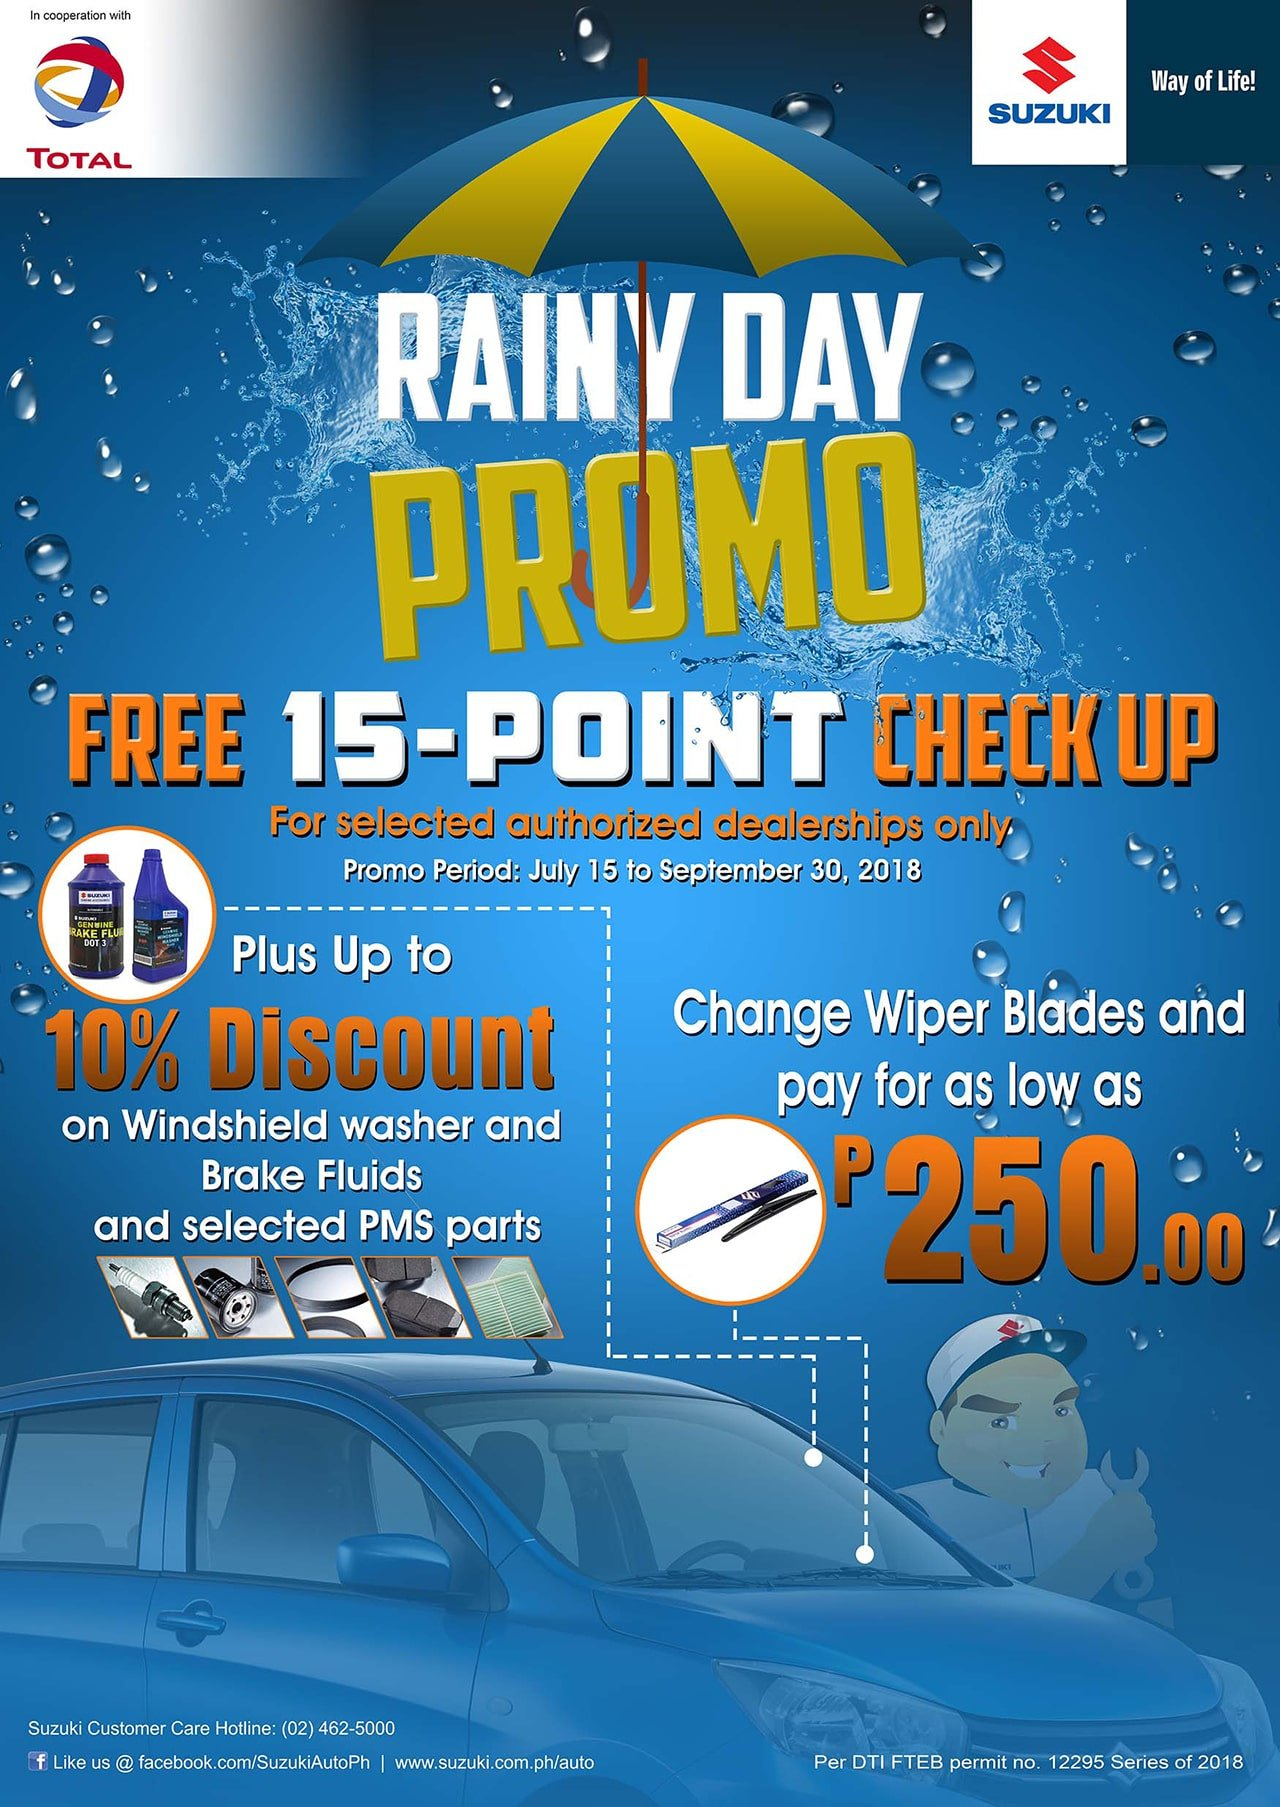 RAINY DAY PROMO